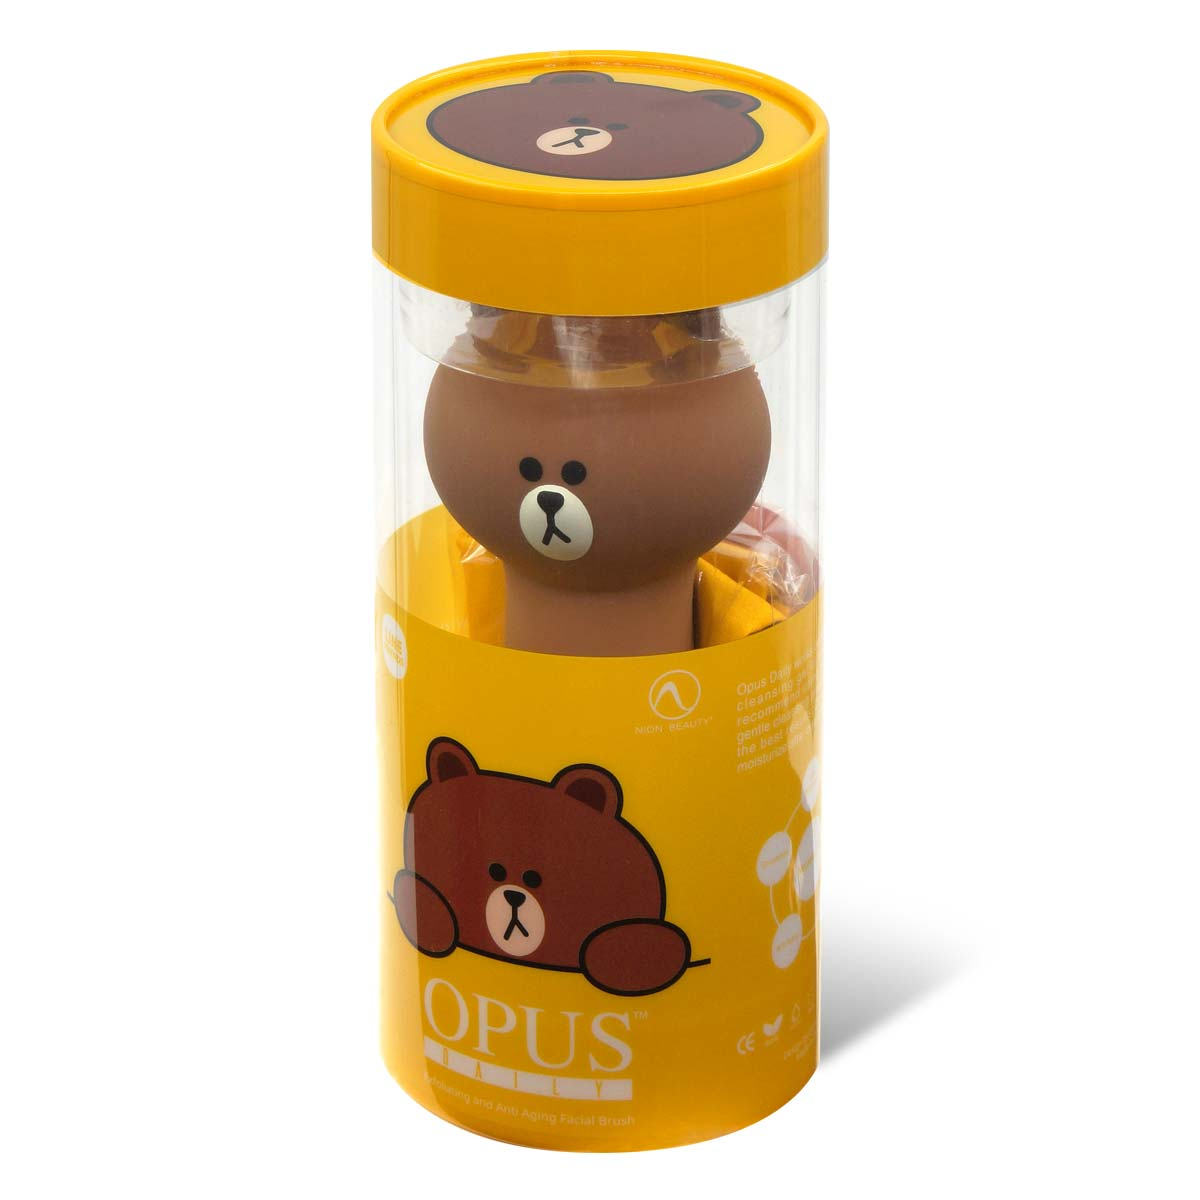 Line Friends Opus Daily 角质及抗衰老洁面仪 (Brown / 熊大)